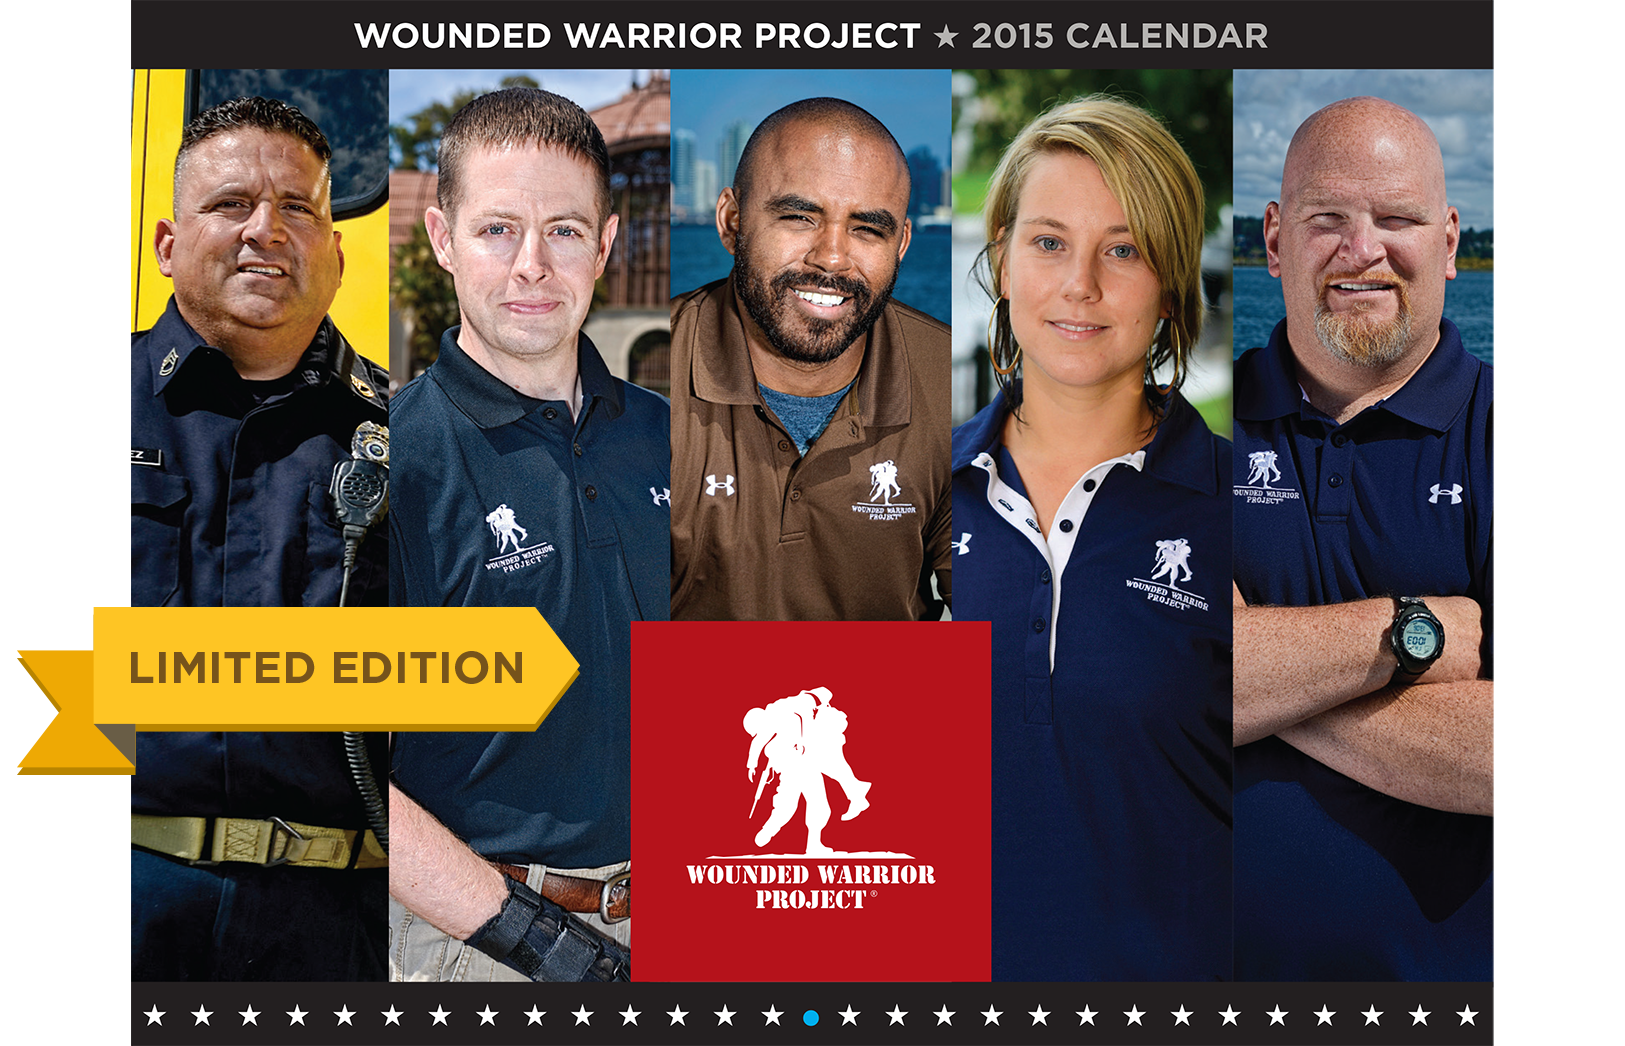 Wounded Warrior Project Calendar